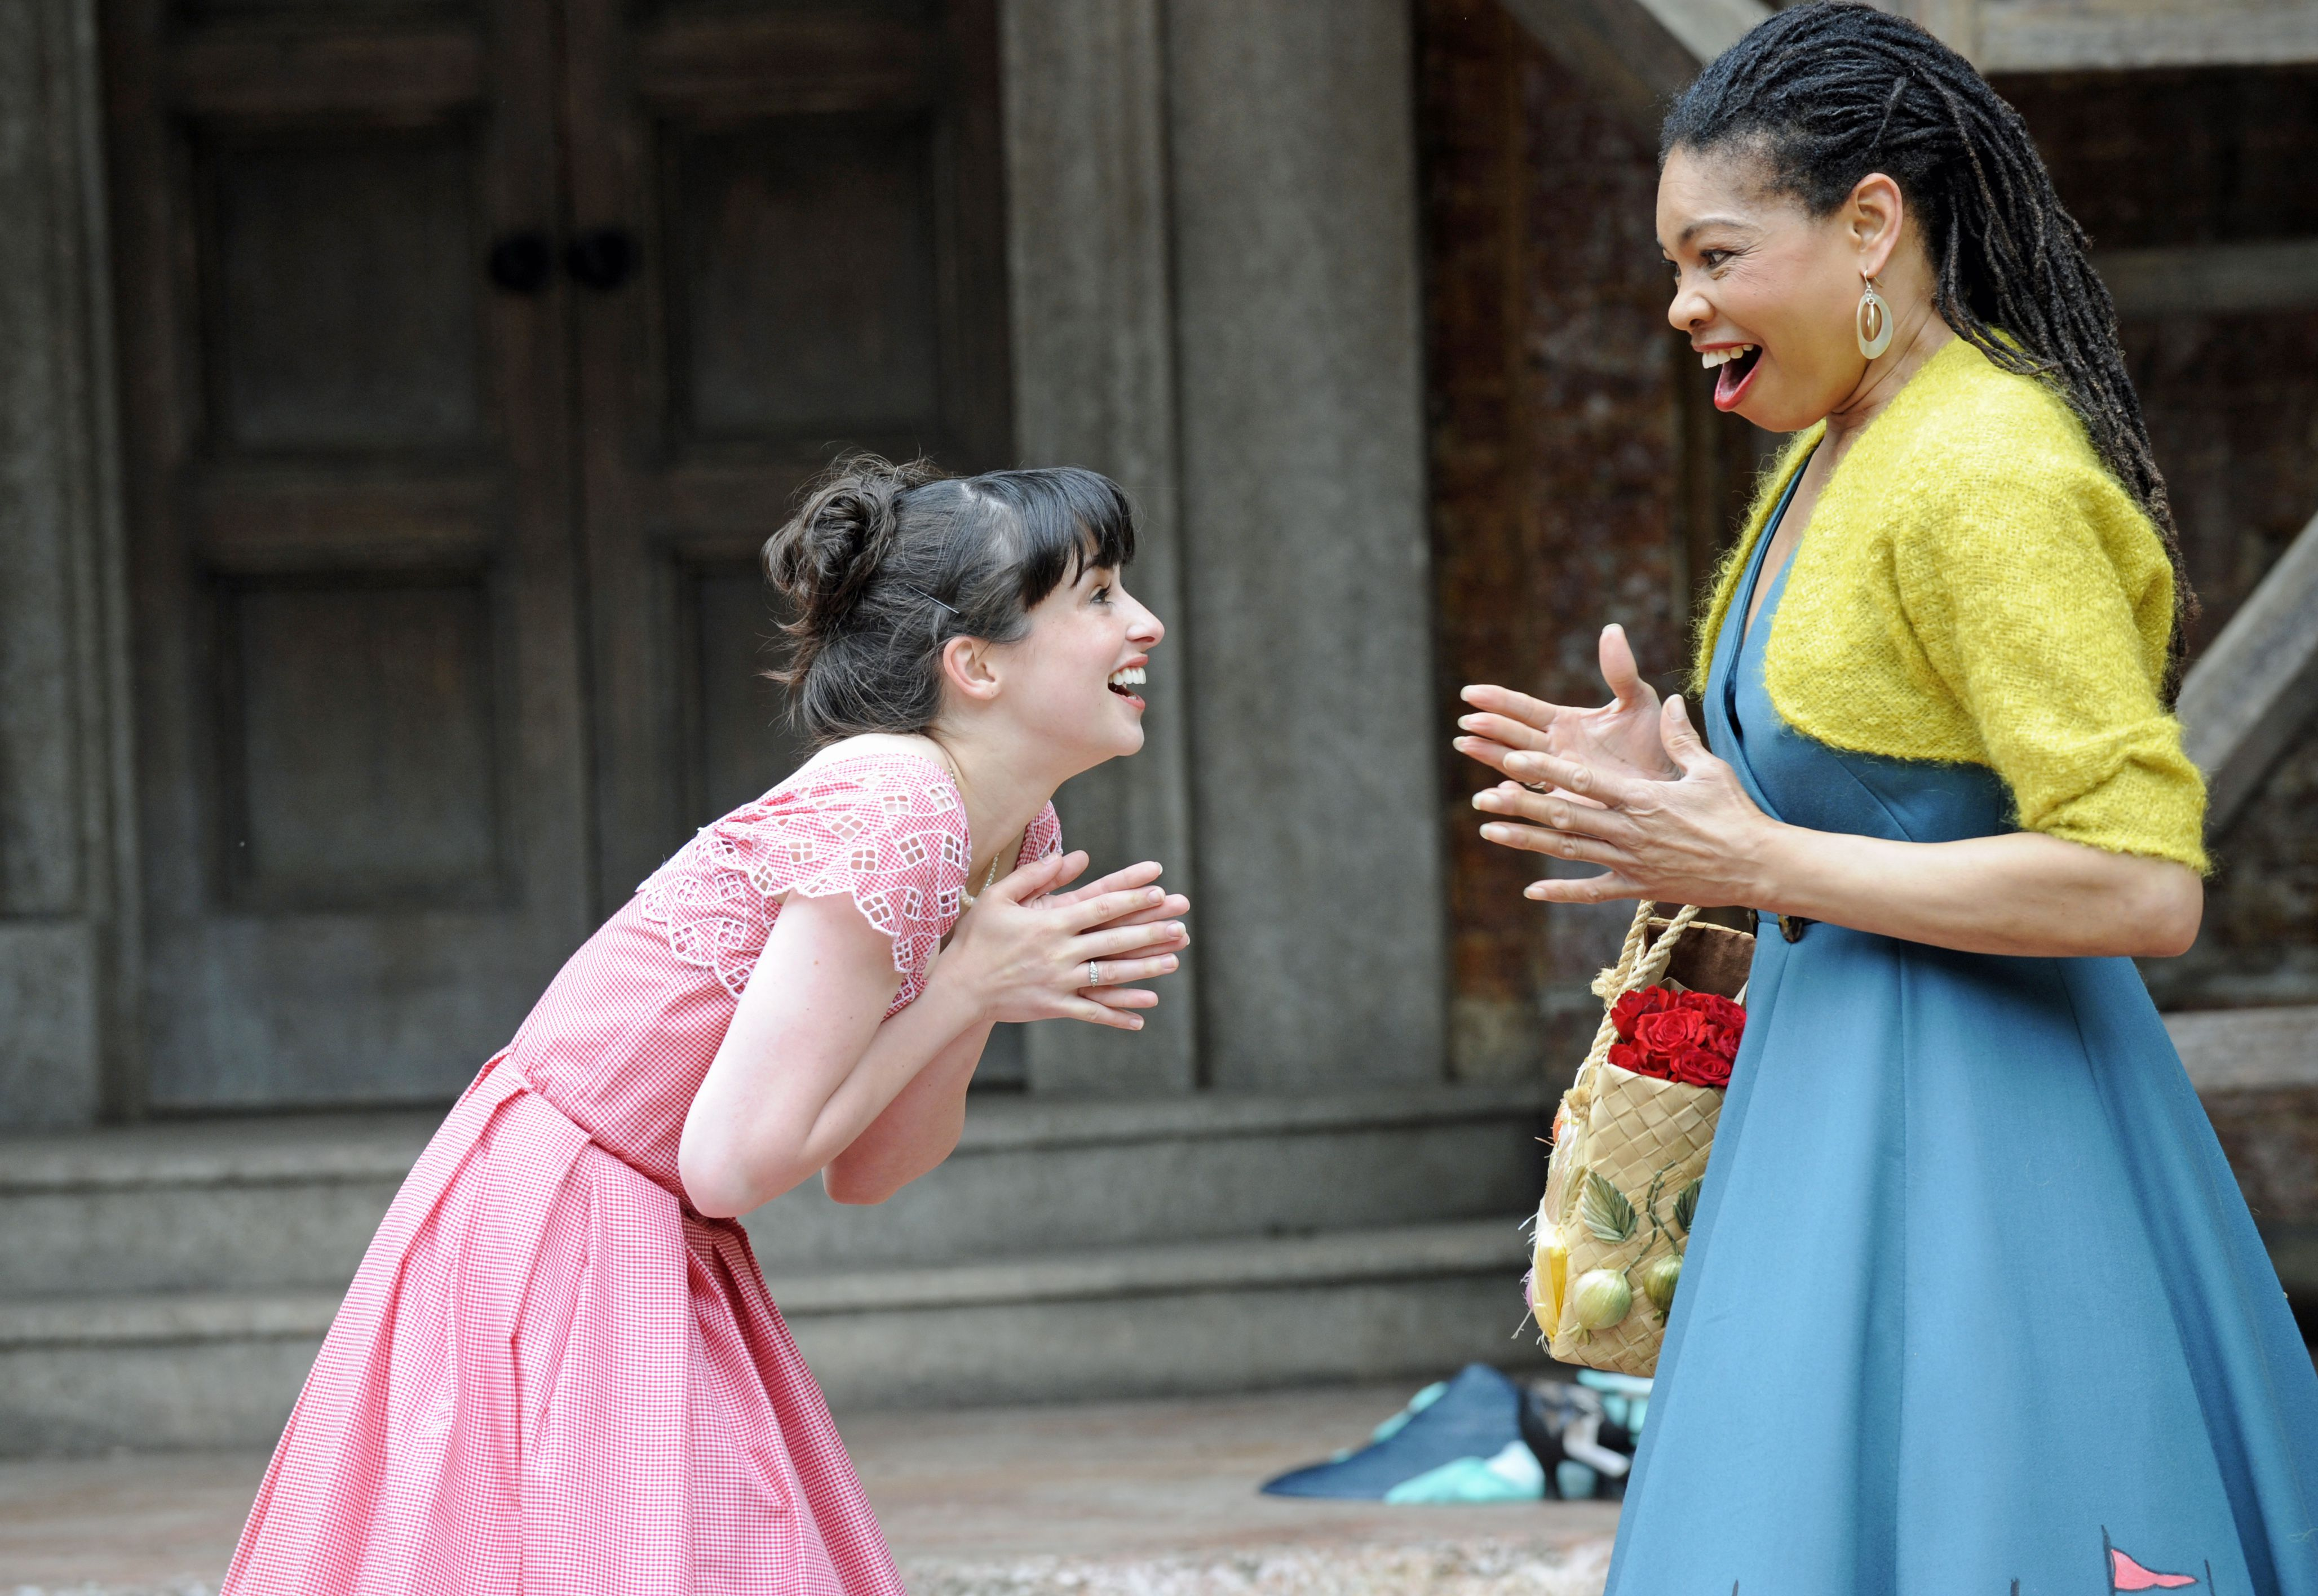 Shakespeare in the Park is a popular summer entertainment series.